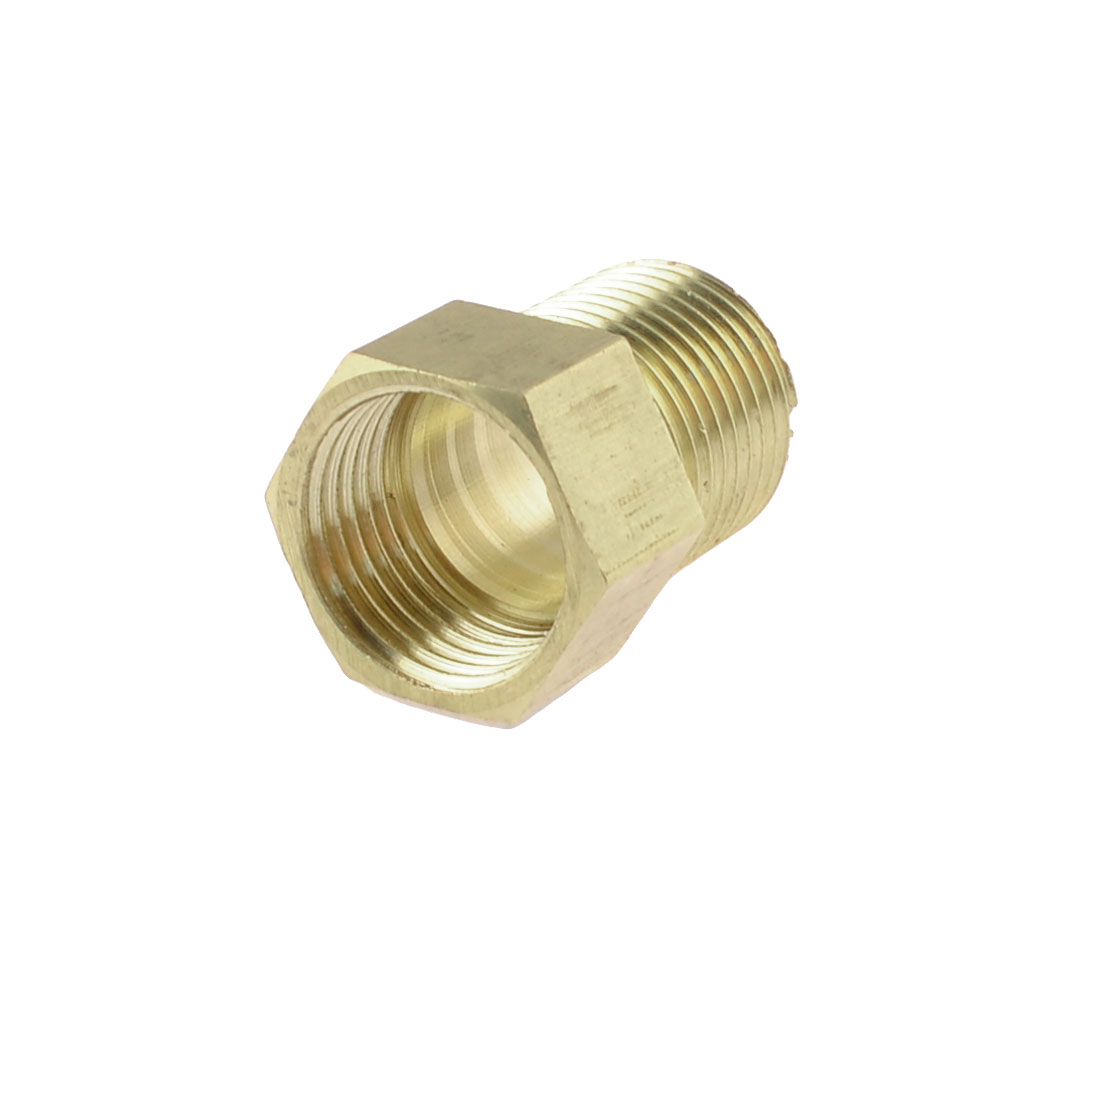 "Brass 1/2"" PT Male to Female Thread Hex Bushing Pneumatic Piping Quick Coupler"